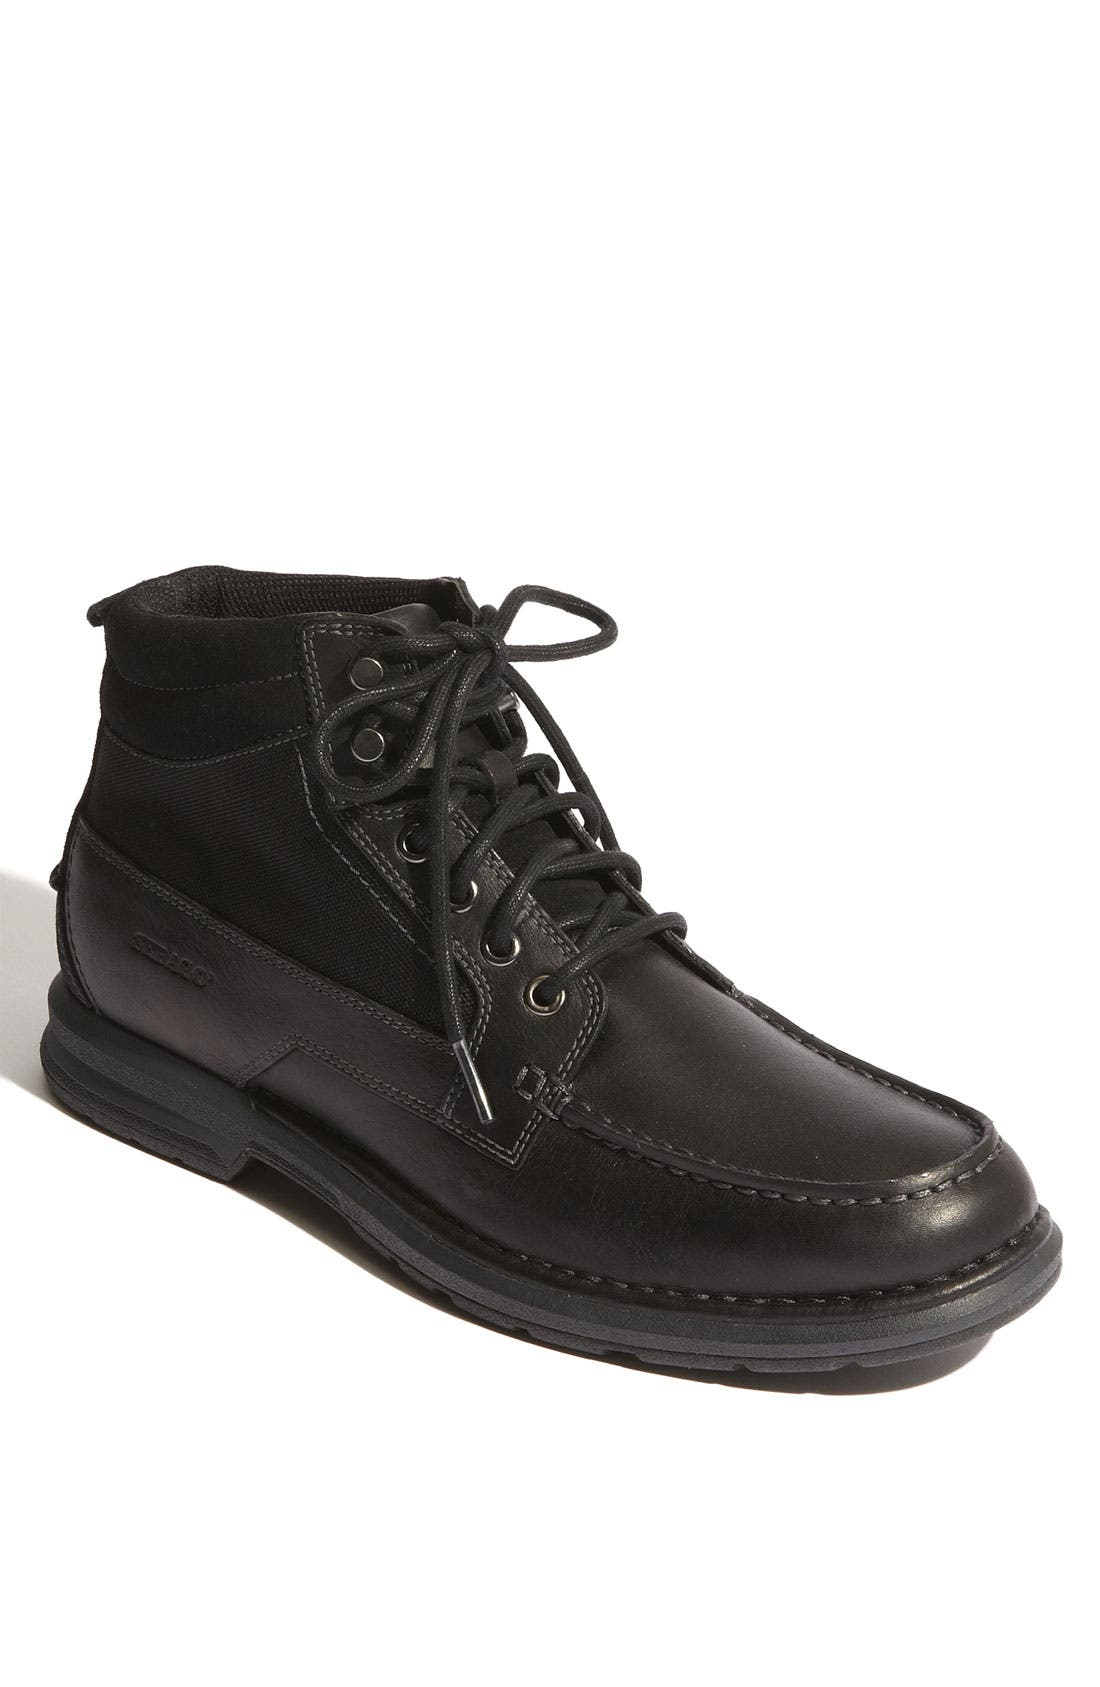 'Concord' Ankle Boot, Main, color, 001